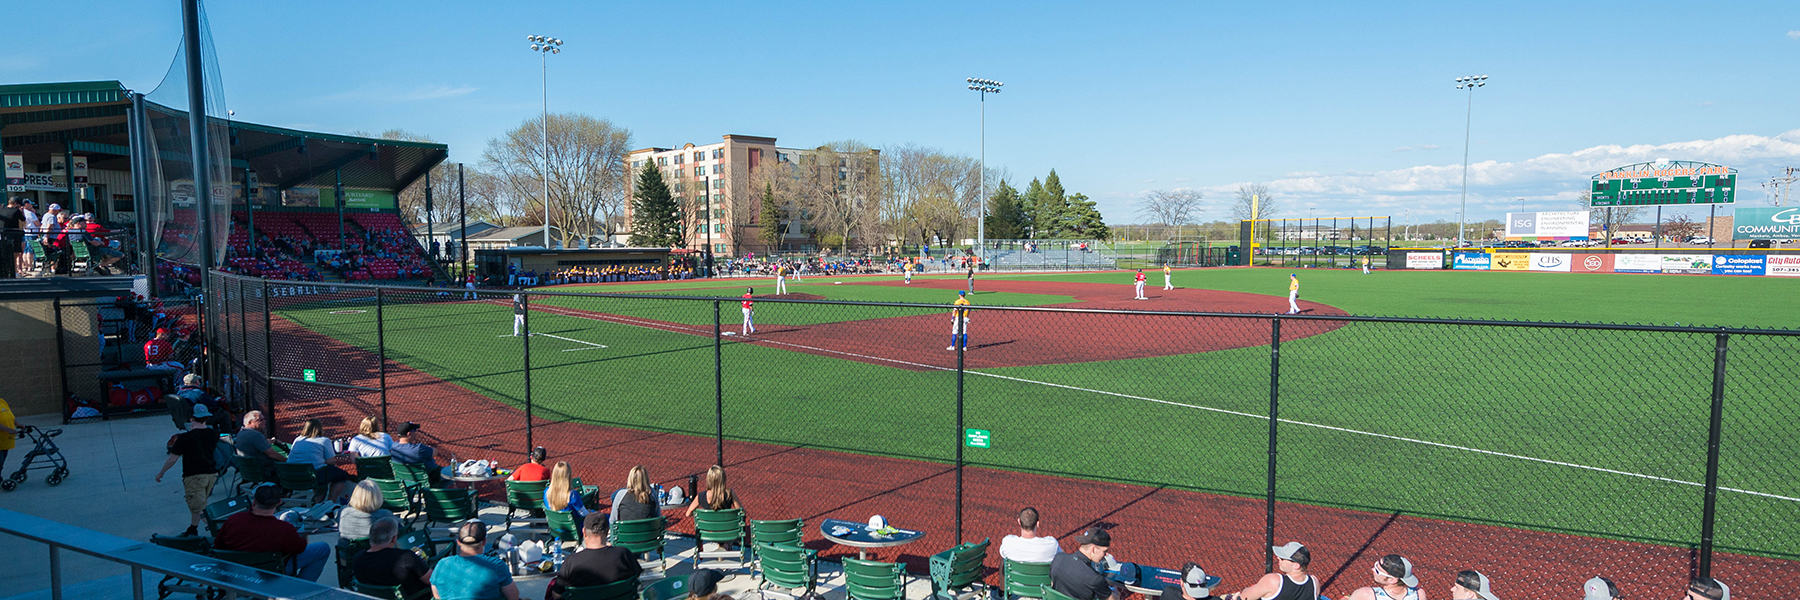 baseball field with players and fans